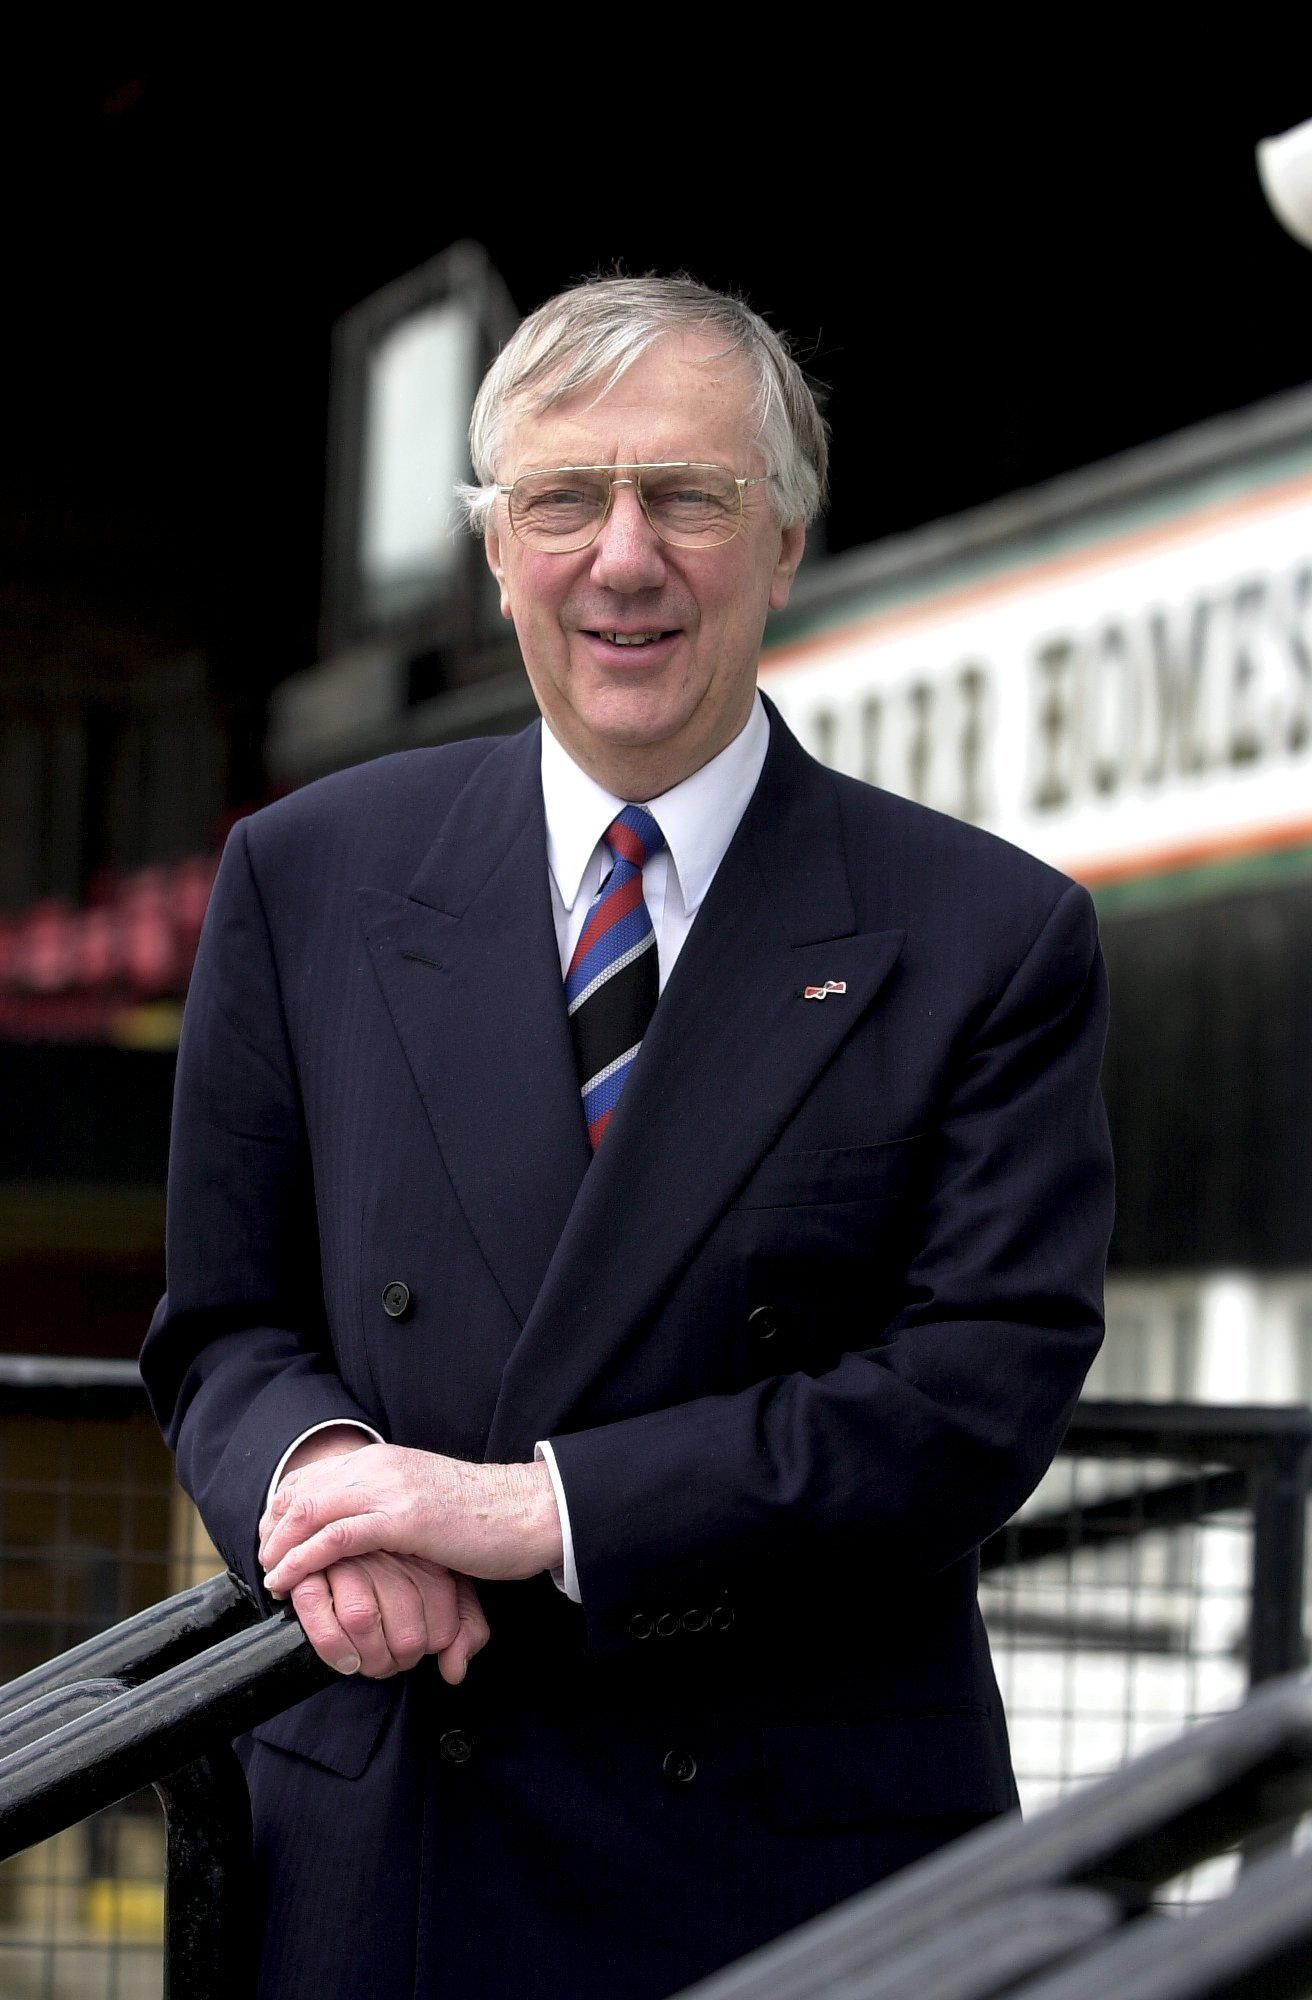 Obituary: Bill Barr, construction giant who chaired Ayr United FC - HeraldScotland